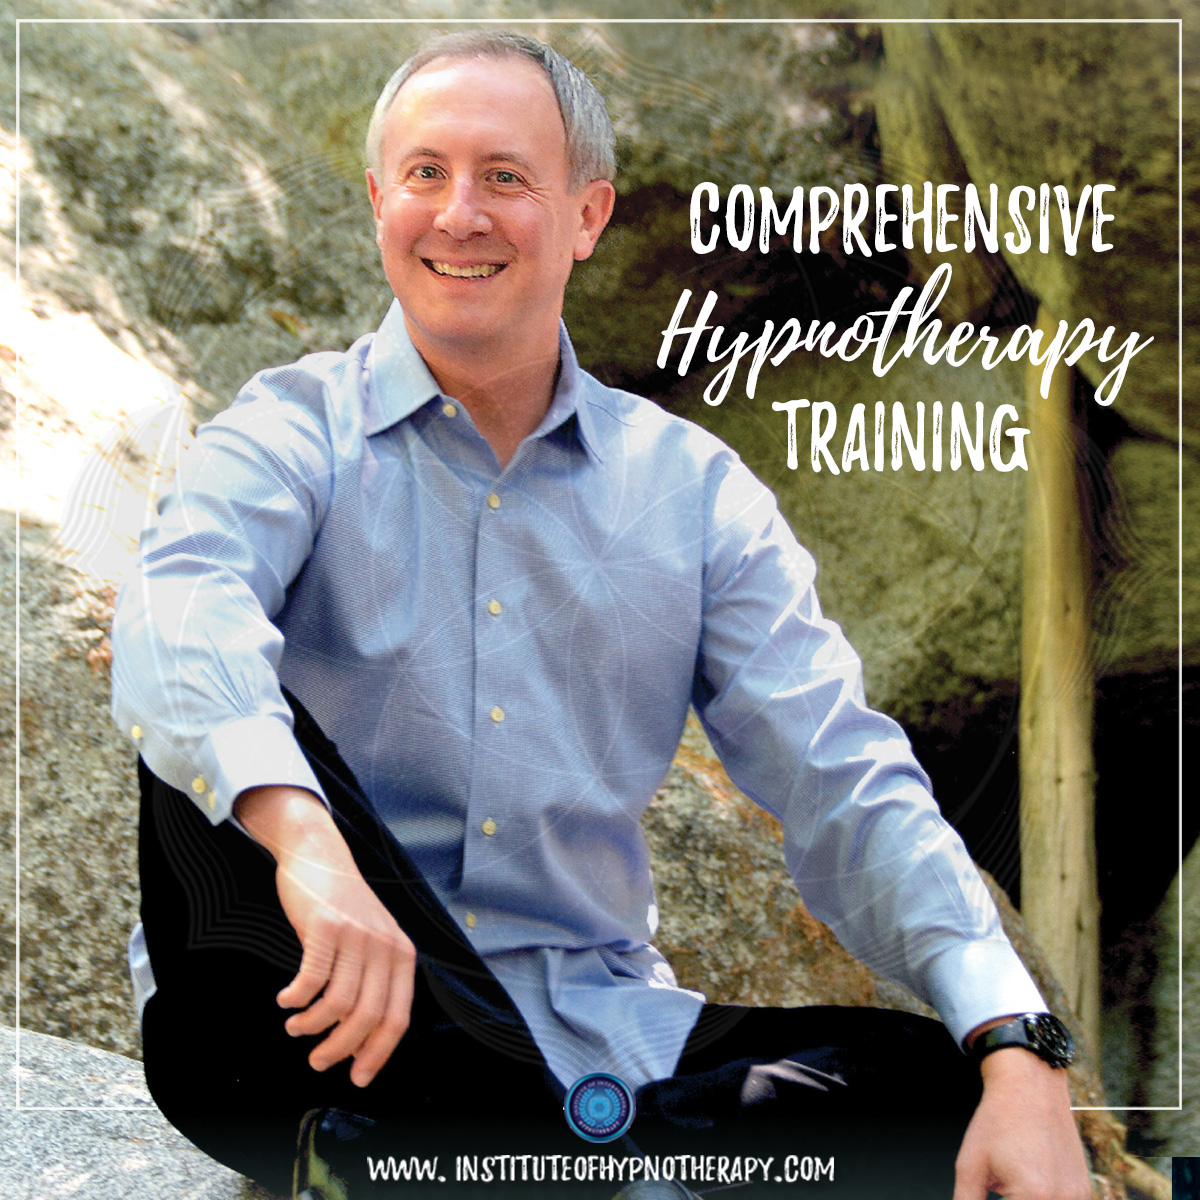 Hypnotherapy Training Jan 2021 Orlando, Hollywood, Tampa, Florida. Raleigh, North Carolina.  Crestline, California.